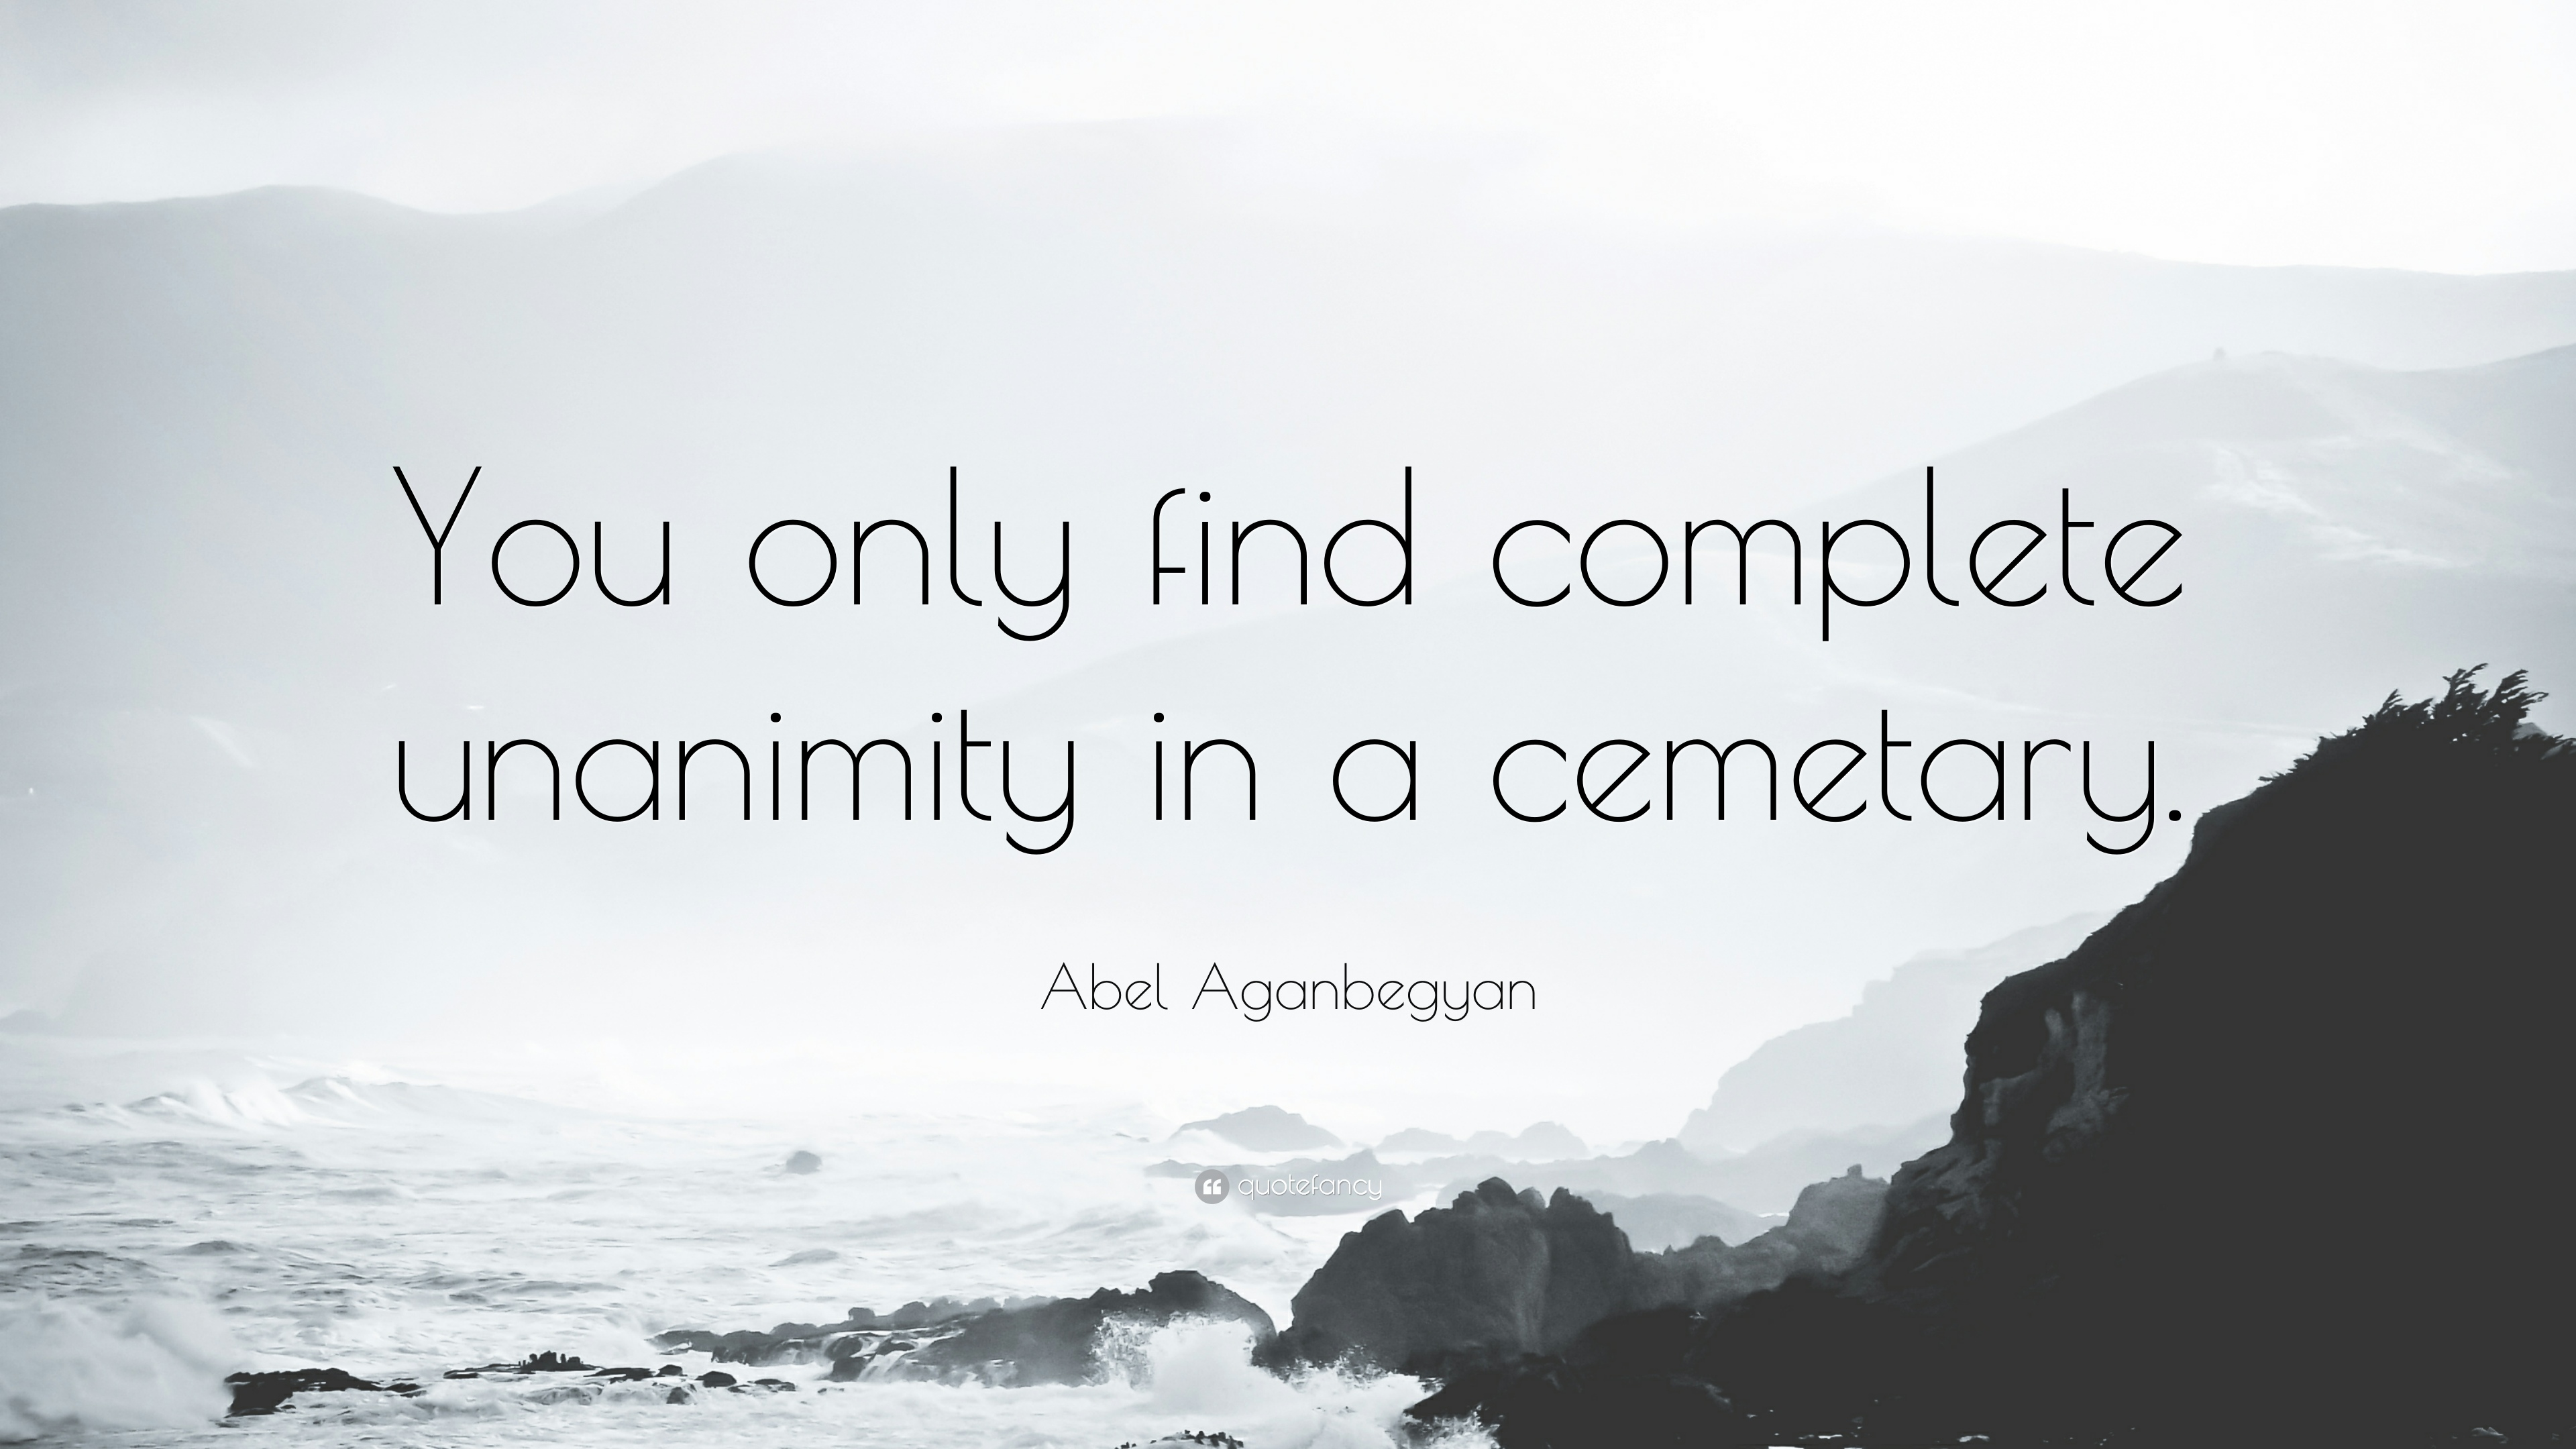 Abel Aganbegyan Quotes (3 wallpapers) - Quotefancy